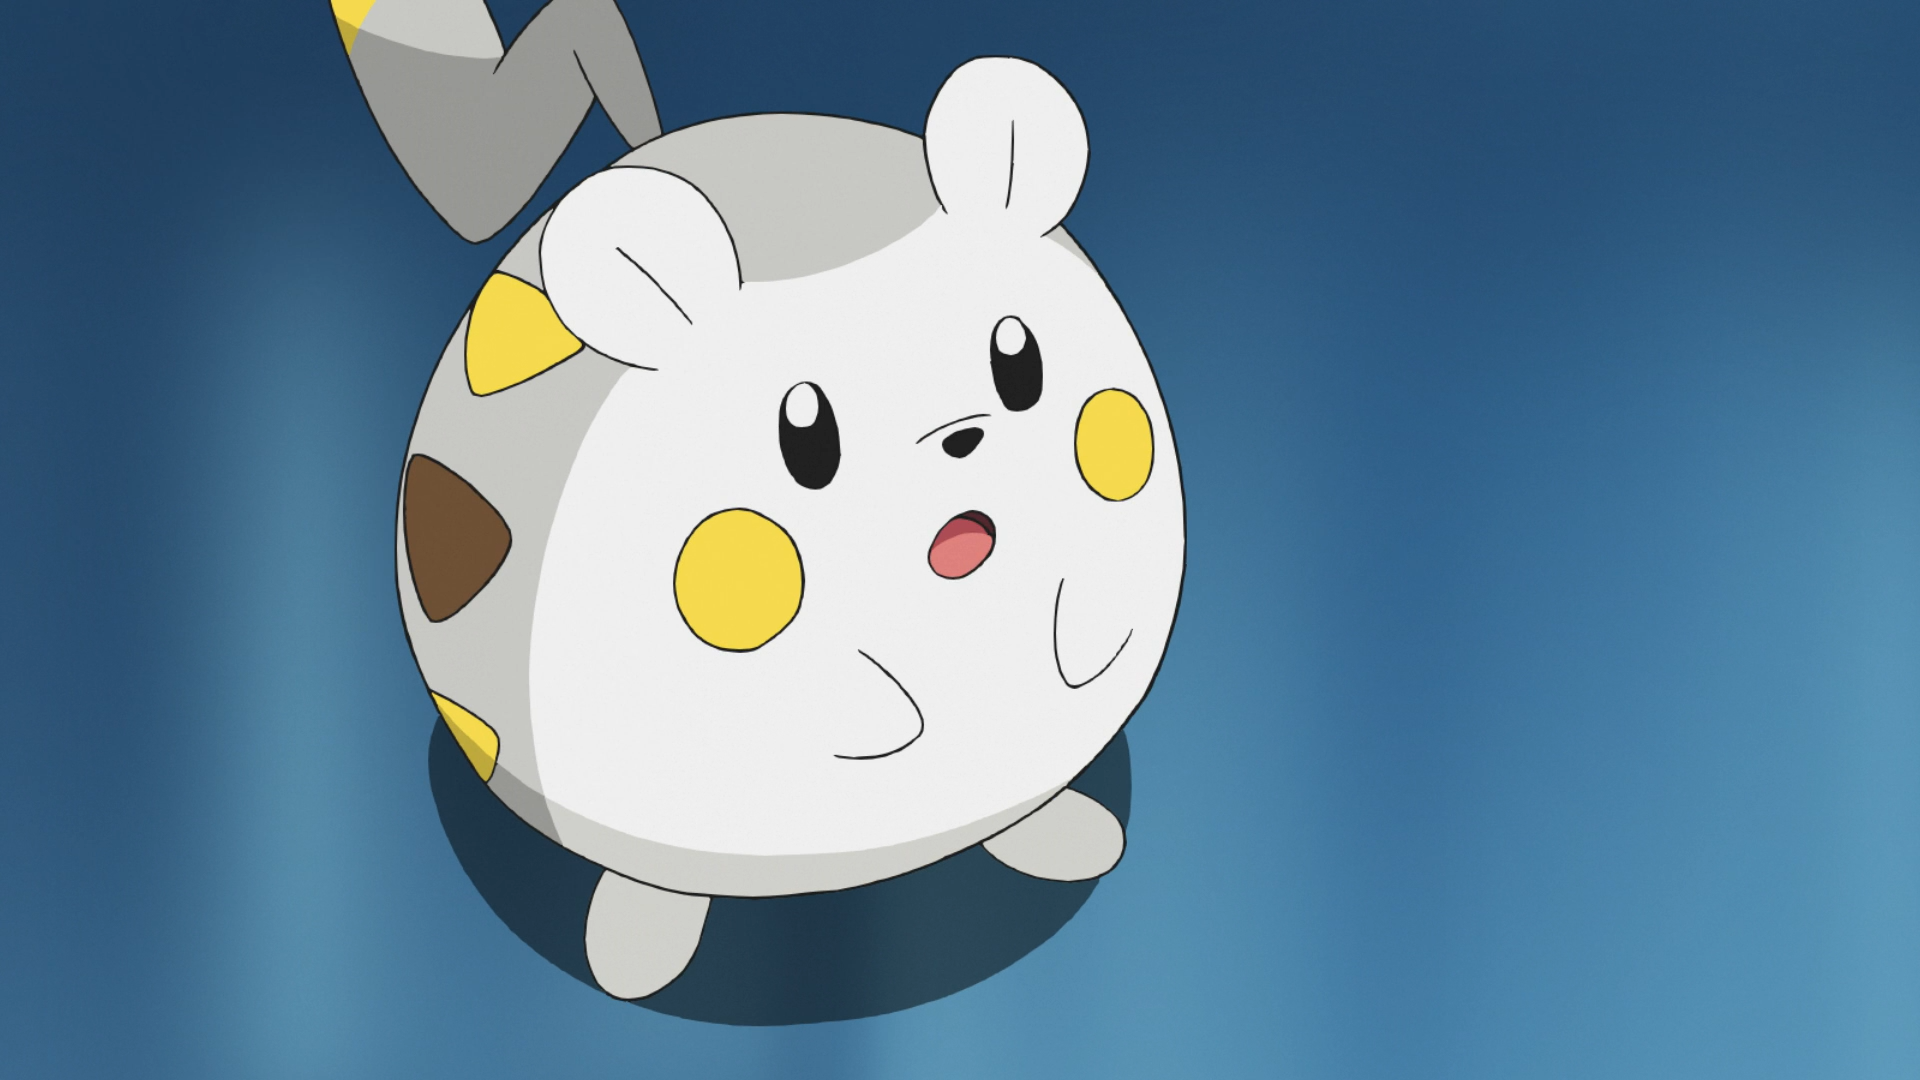 Sophocles Togedemaru